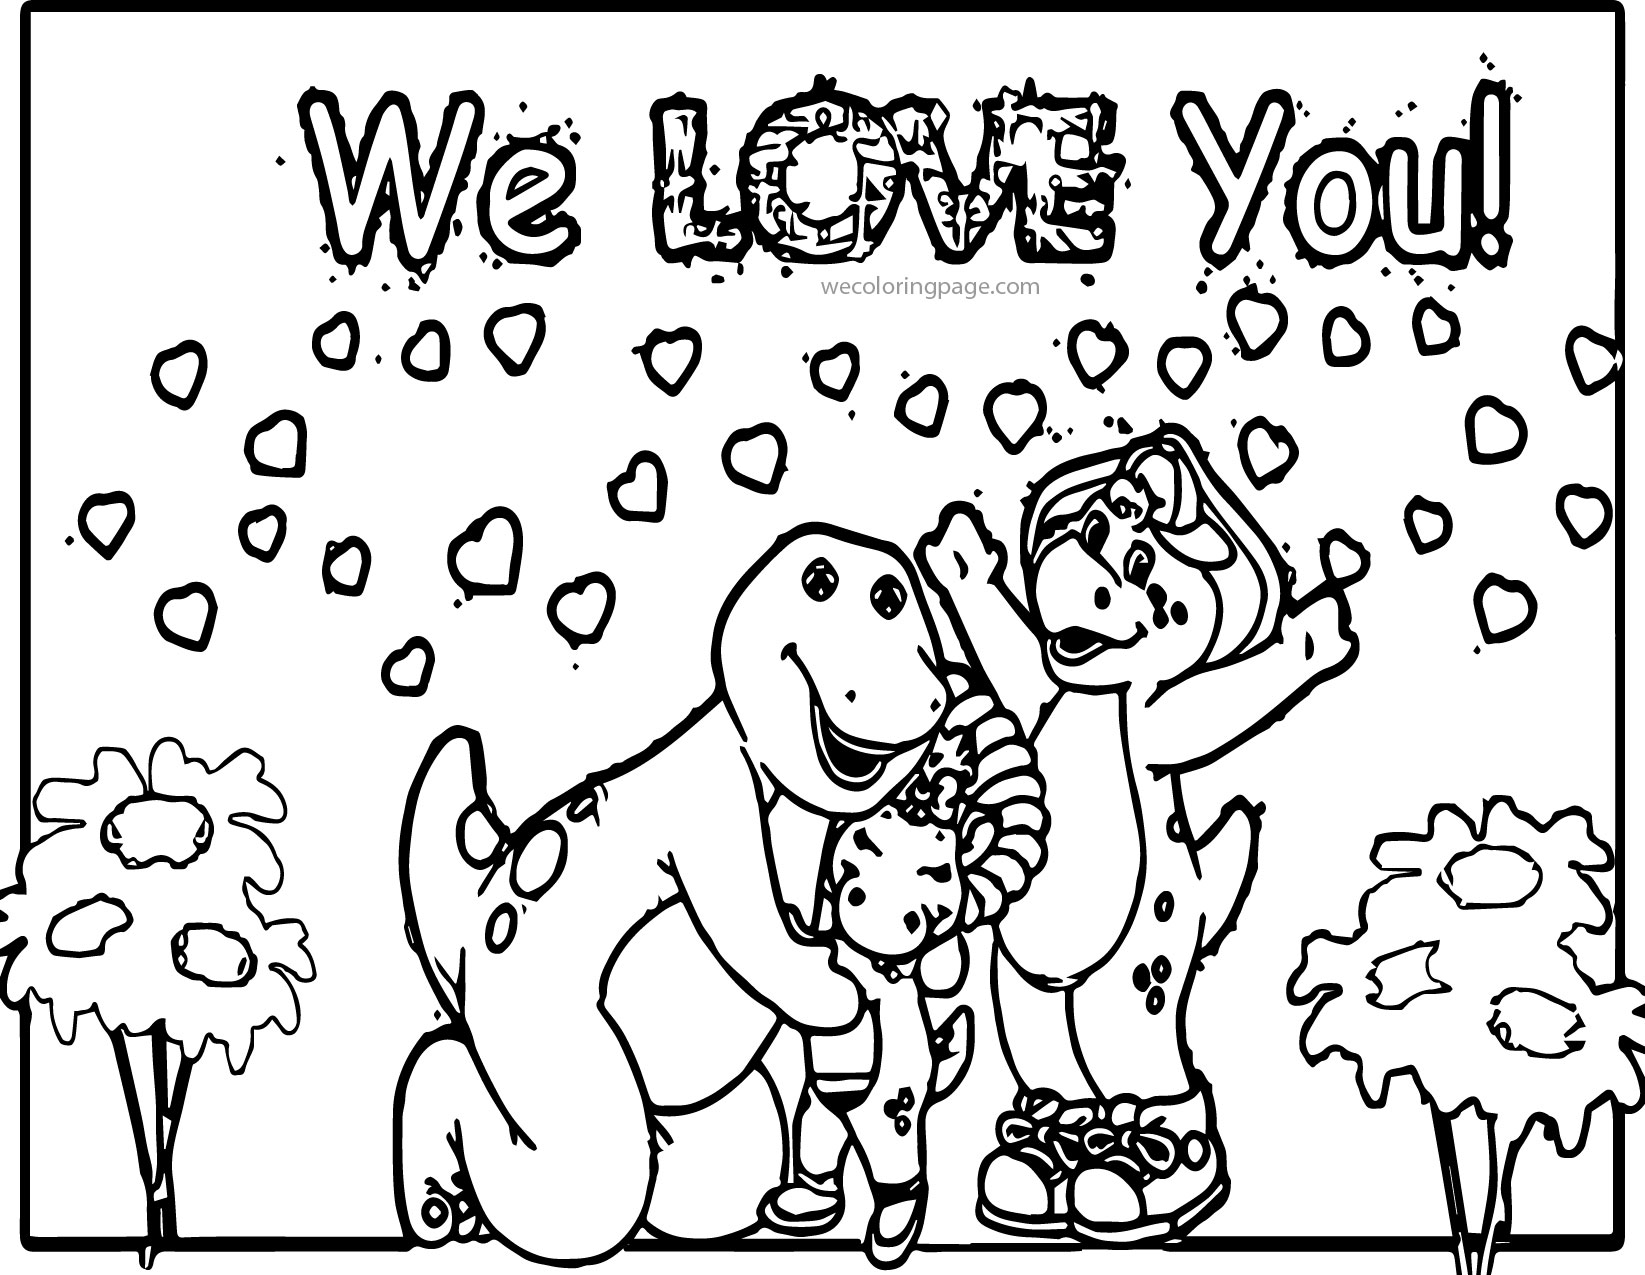 barney friends coloring pages